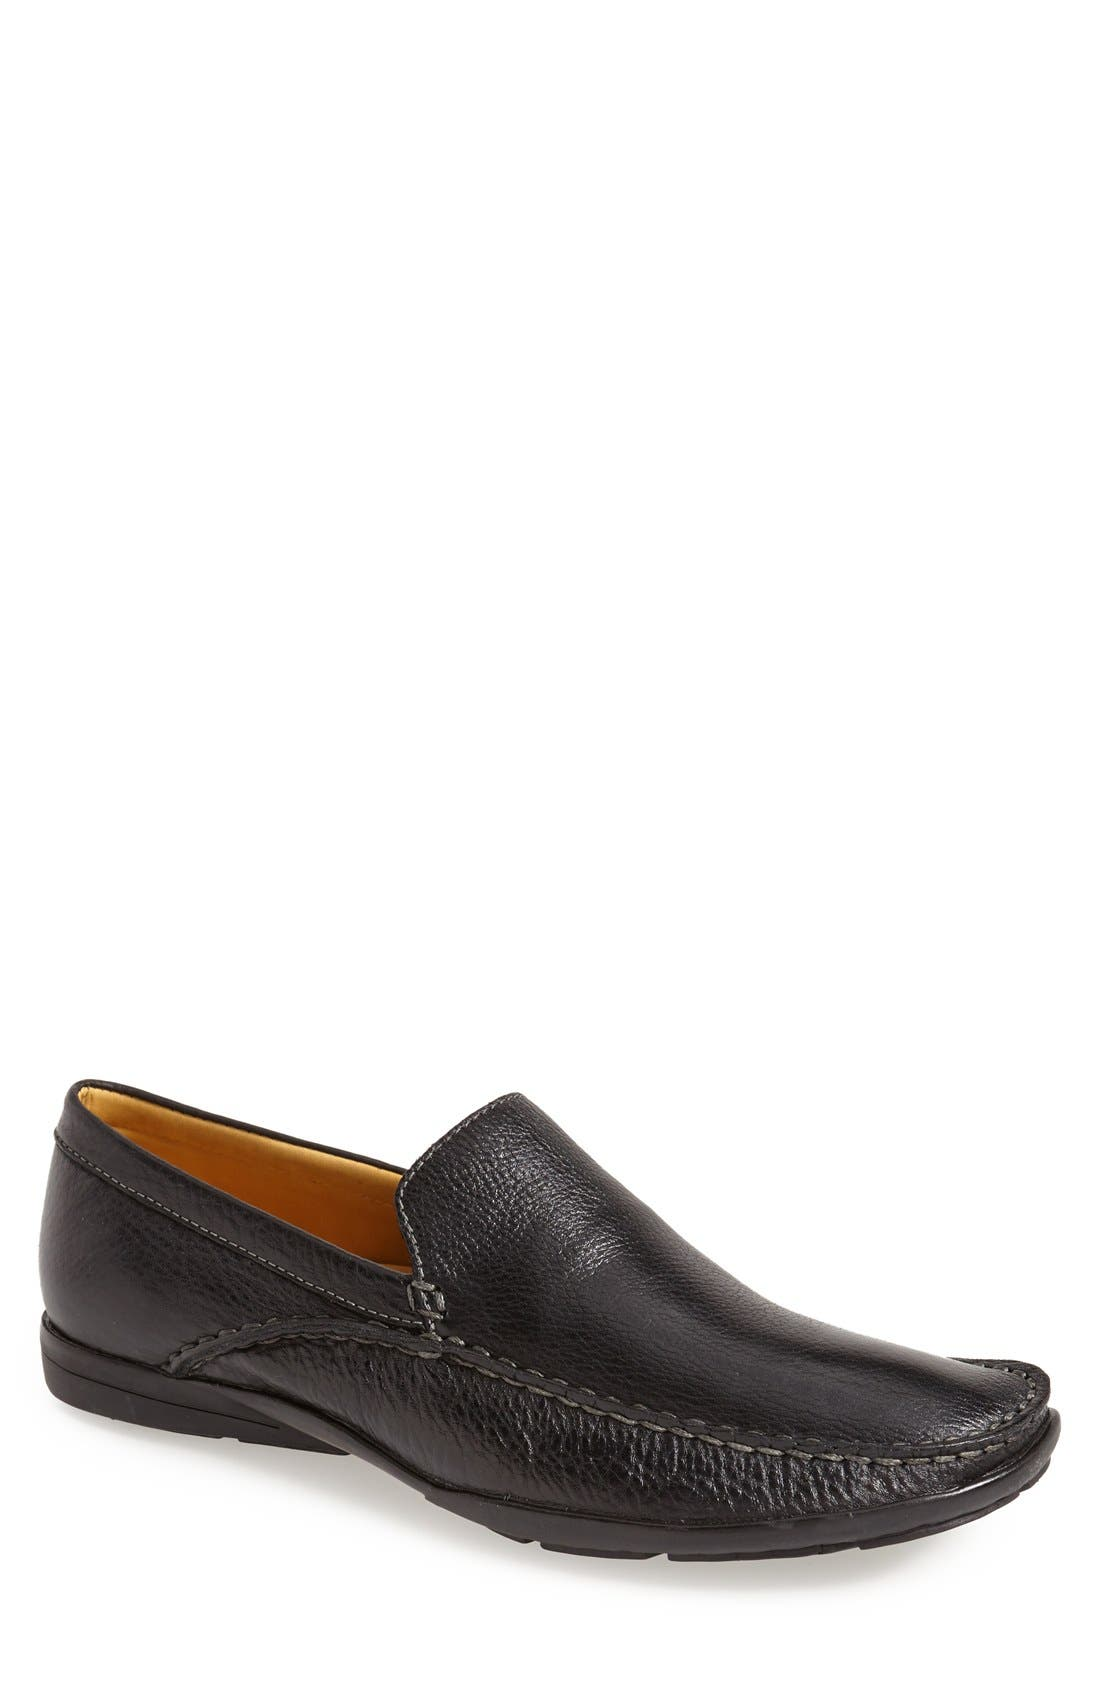 Alternate Image 1 Selected - Sandro Moscoloni 'Dillon' Loafer (Men)